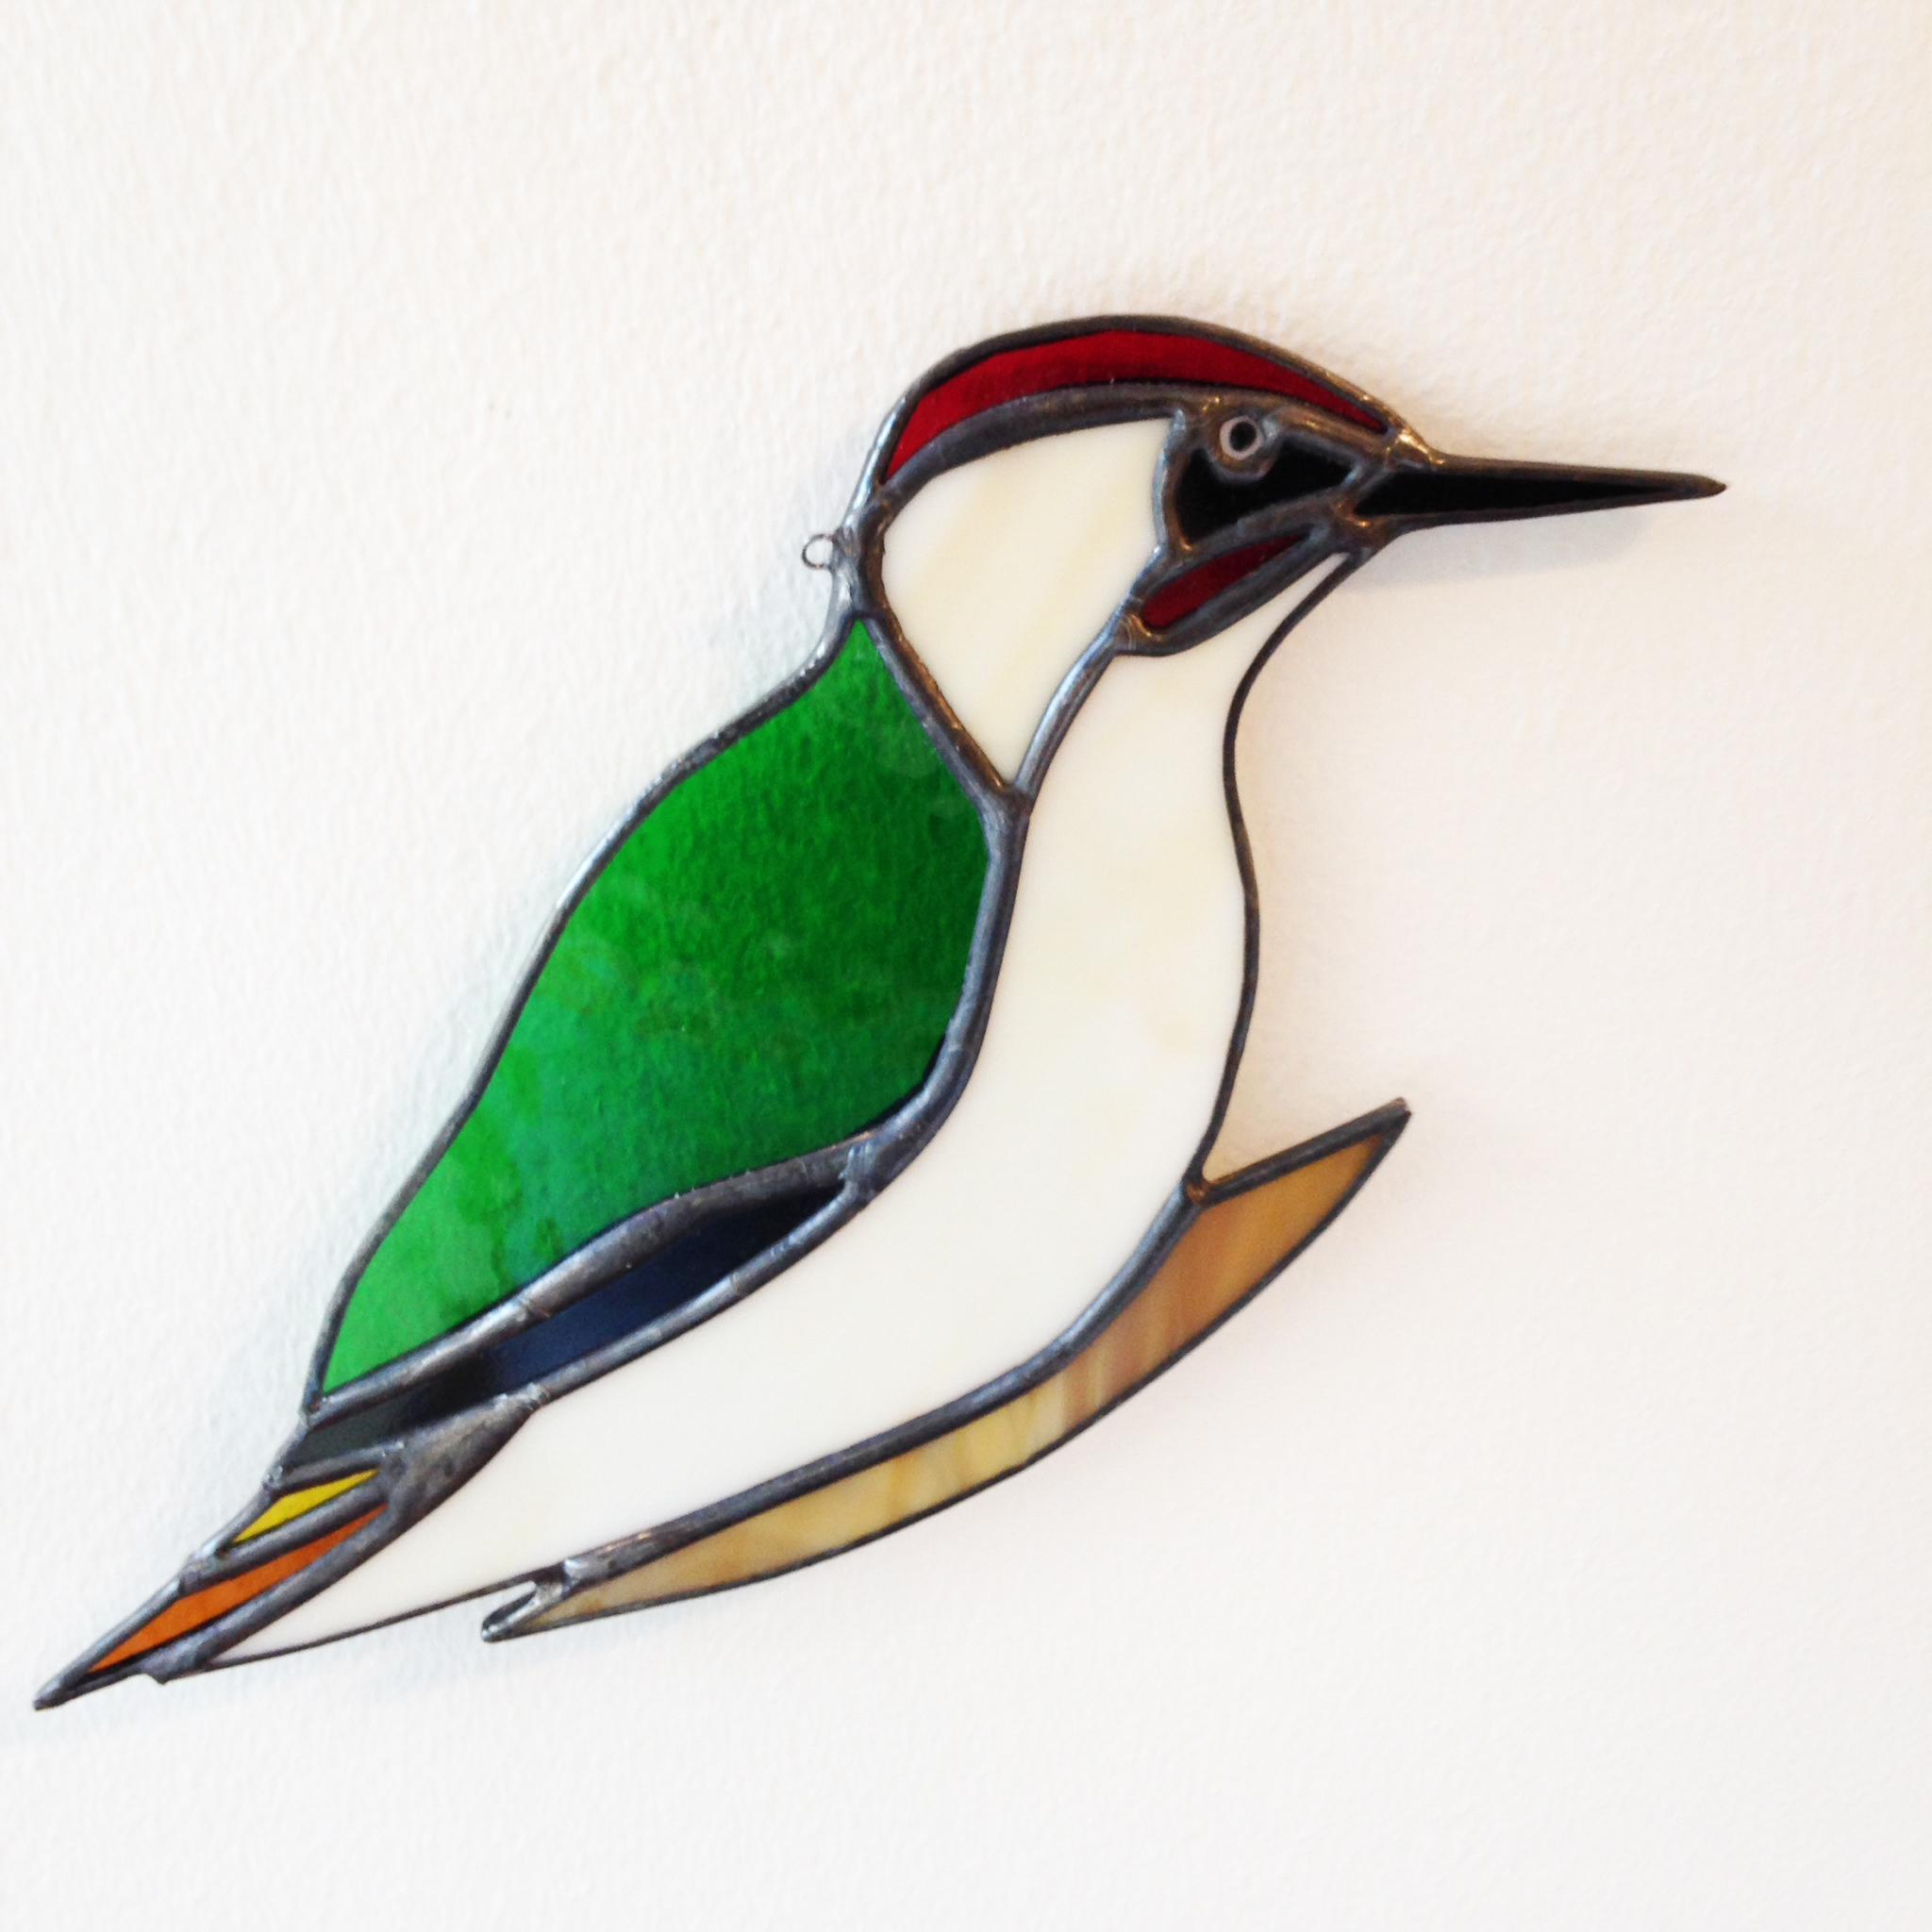 Eddy Crick   Green Woodpecker  glass  £33